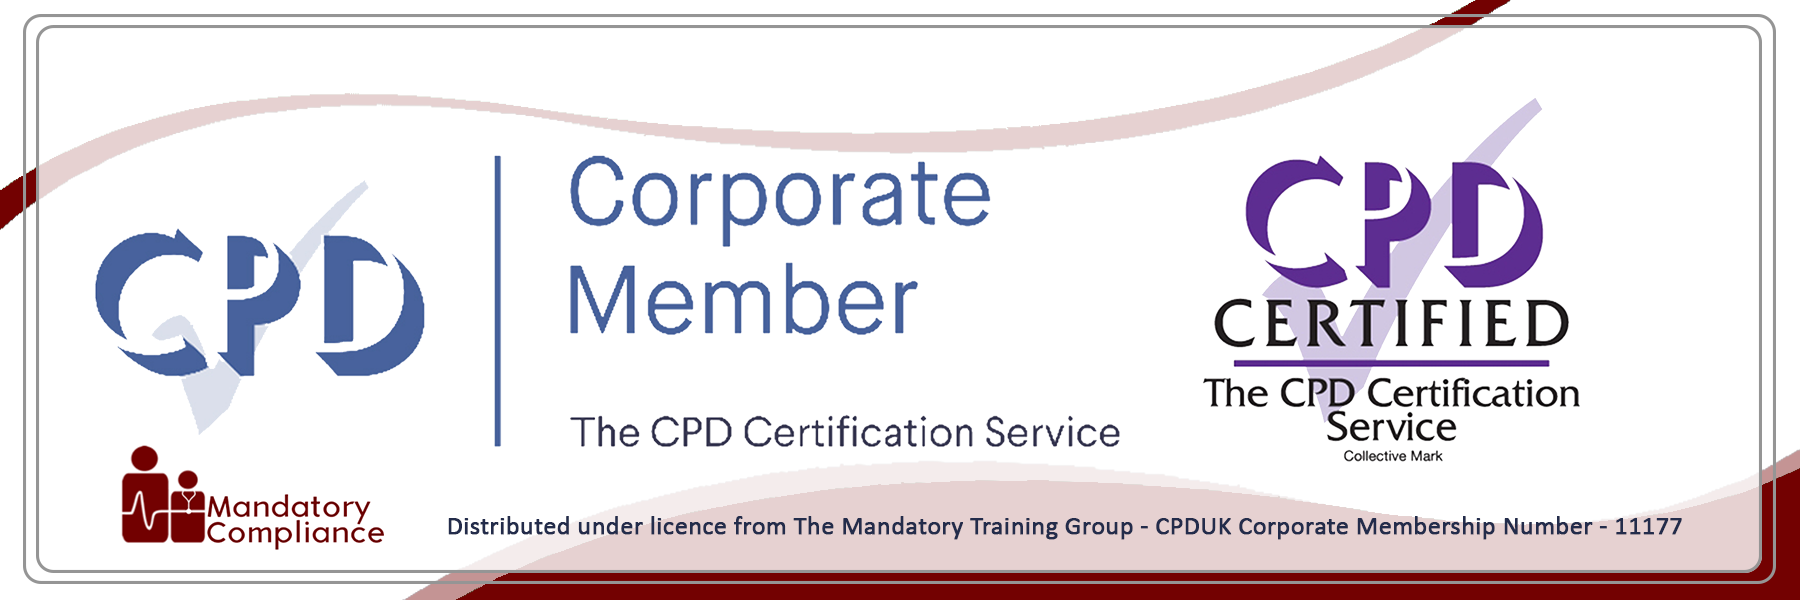 Migrating from Office 2003 to Office 2013 -Online Training Course - Mandatory Compliance UK -